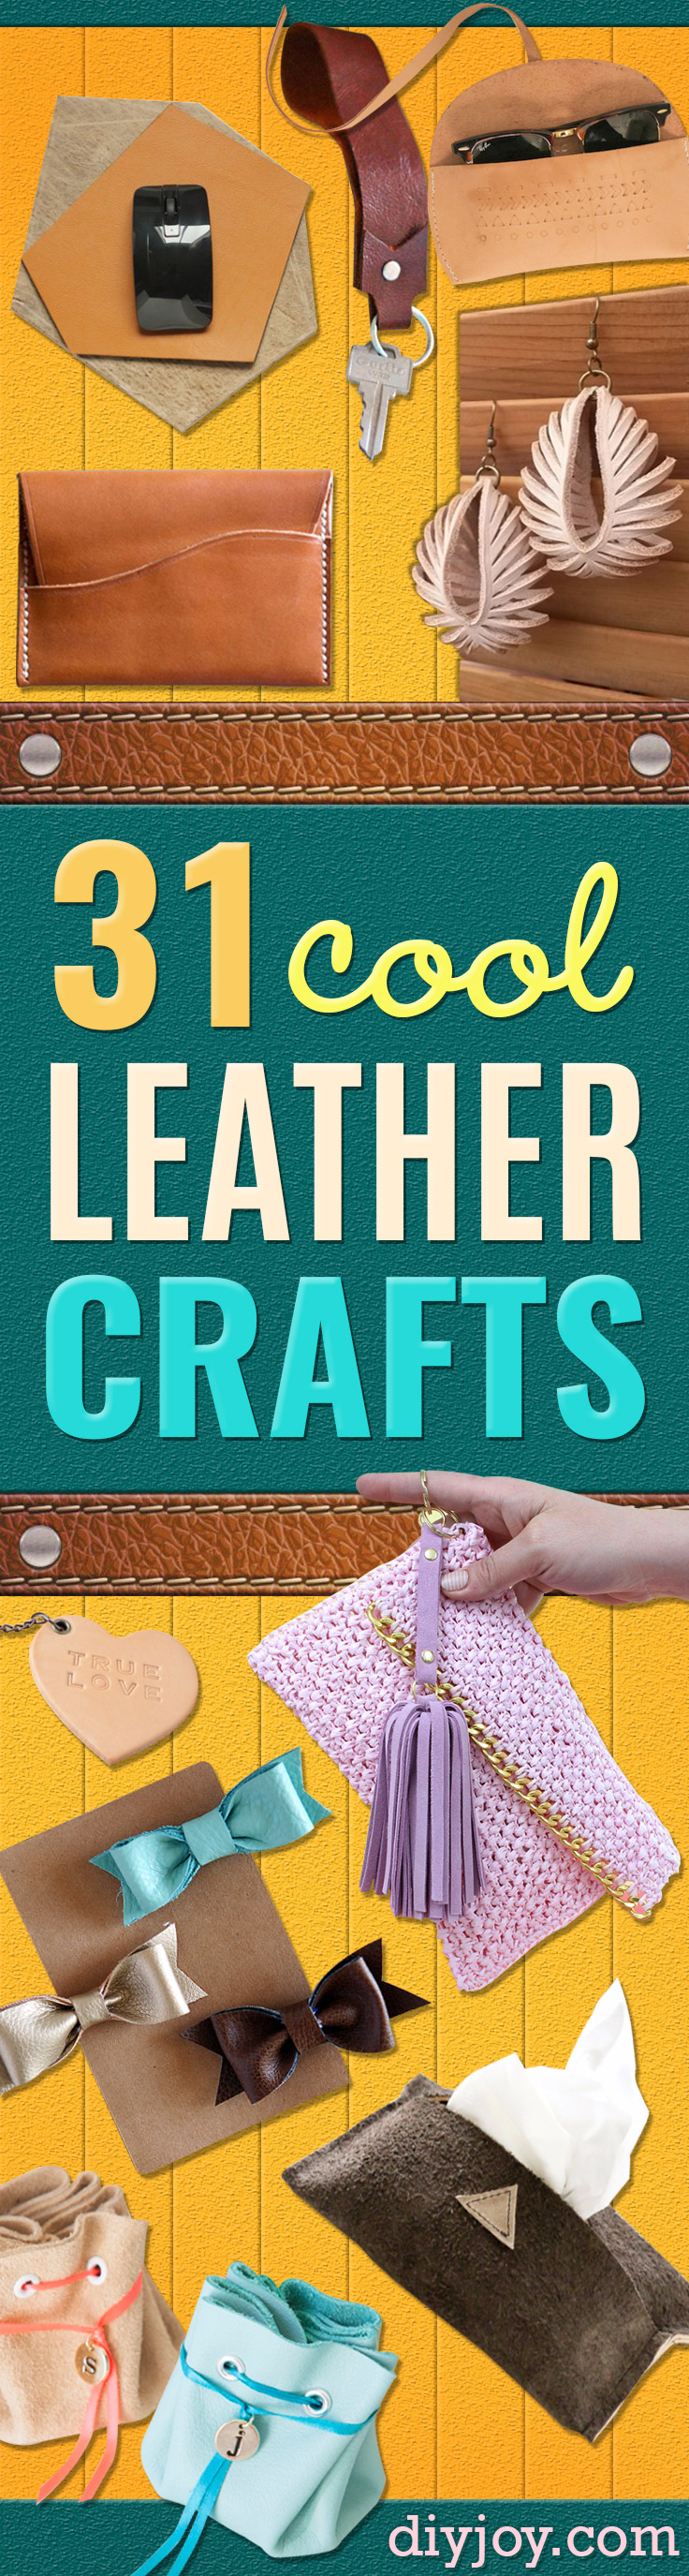 Creative Leather Crafts - Best DIY Projects Made With Leather - Easy Handmade Do It Yourself Gifts and Fashion - Cool Crafts and DYI Leather Projects With Step by Step Tutorials http://diyjoy.com/diy-leather-crafts